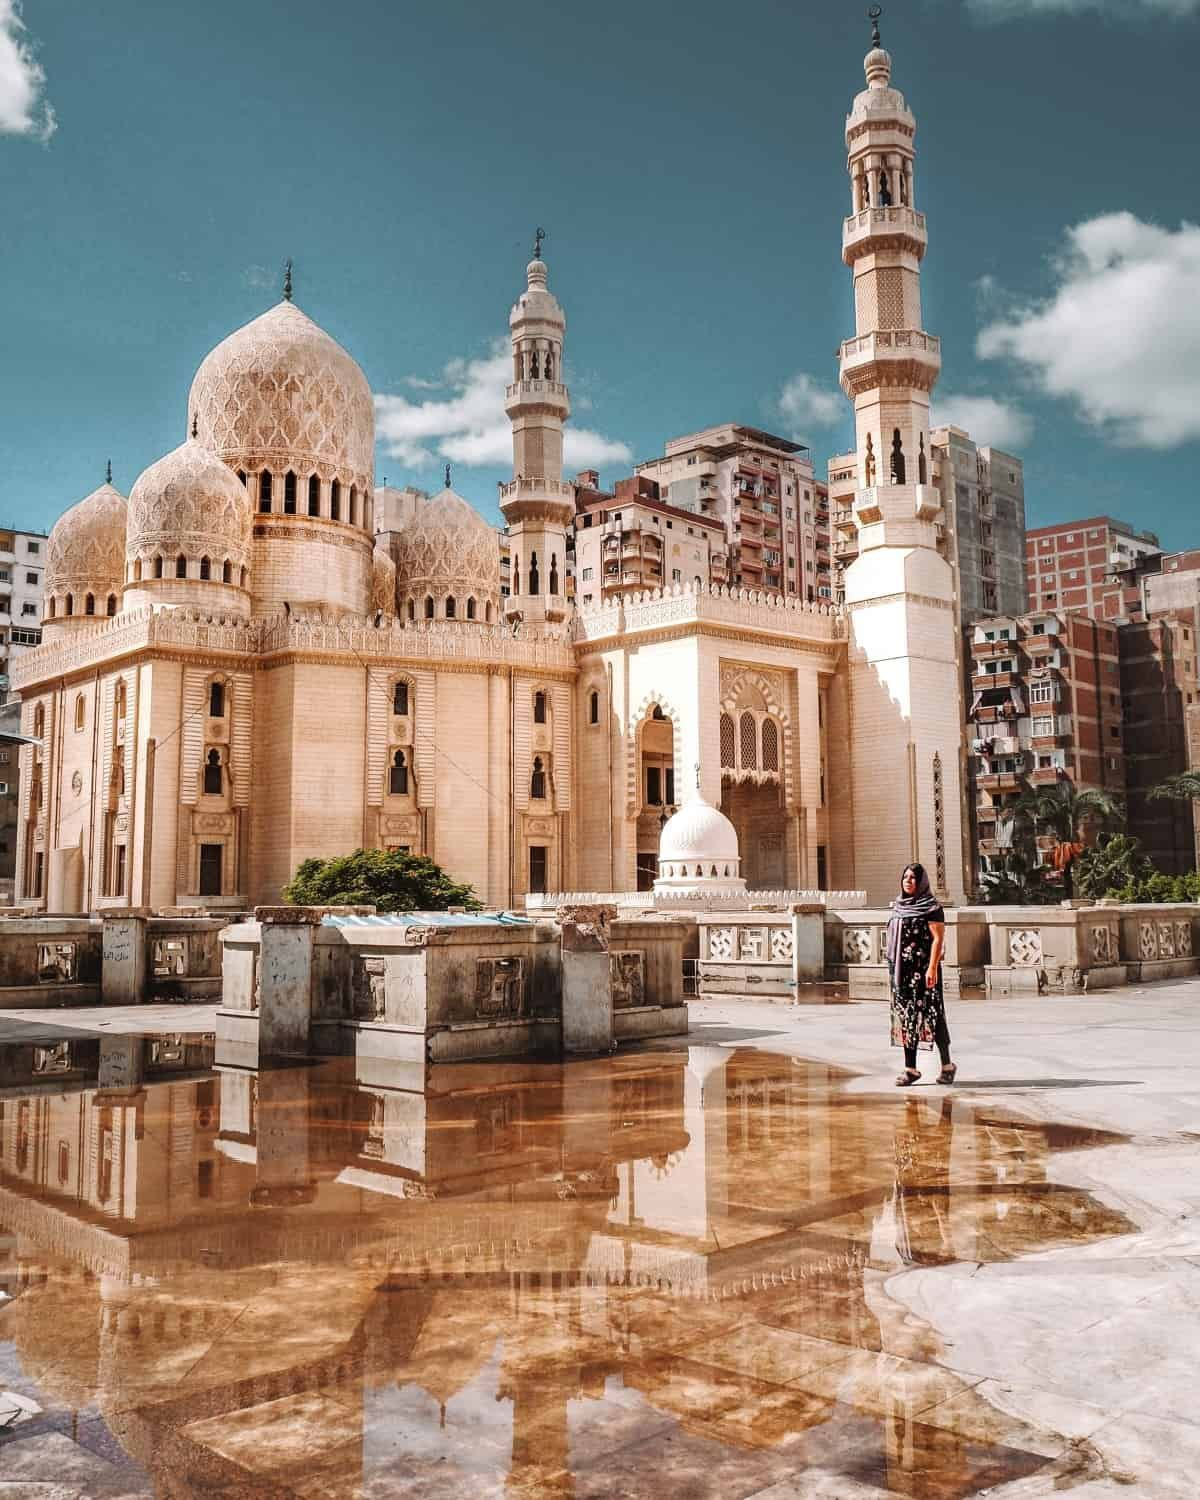 15 REASONS WHY YOU SHOULD VISIT ALEXANDRIA EGYPT & WHY IT'S WORTH IT! - Third Eye Traveller • Solo Female Travel Blog -  15 REASONS WHY YOU SHOULD VISIT ALEXANDRIA EGYPT & WHY IT'S WORTH IT! – Third Eye Traveller • - #alexandria #BeautifulCelebrities #blog #Egypt #Eye #female #Film #Museums #reasons #should #Solo #third #travel #Traveller #visit #worth